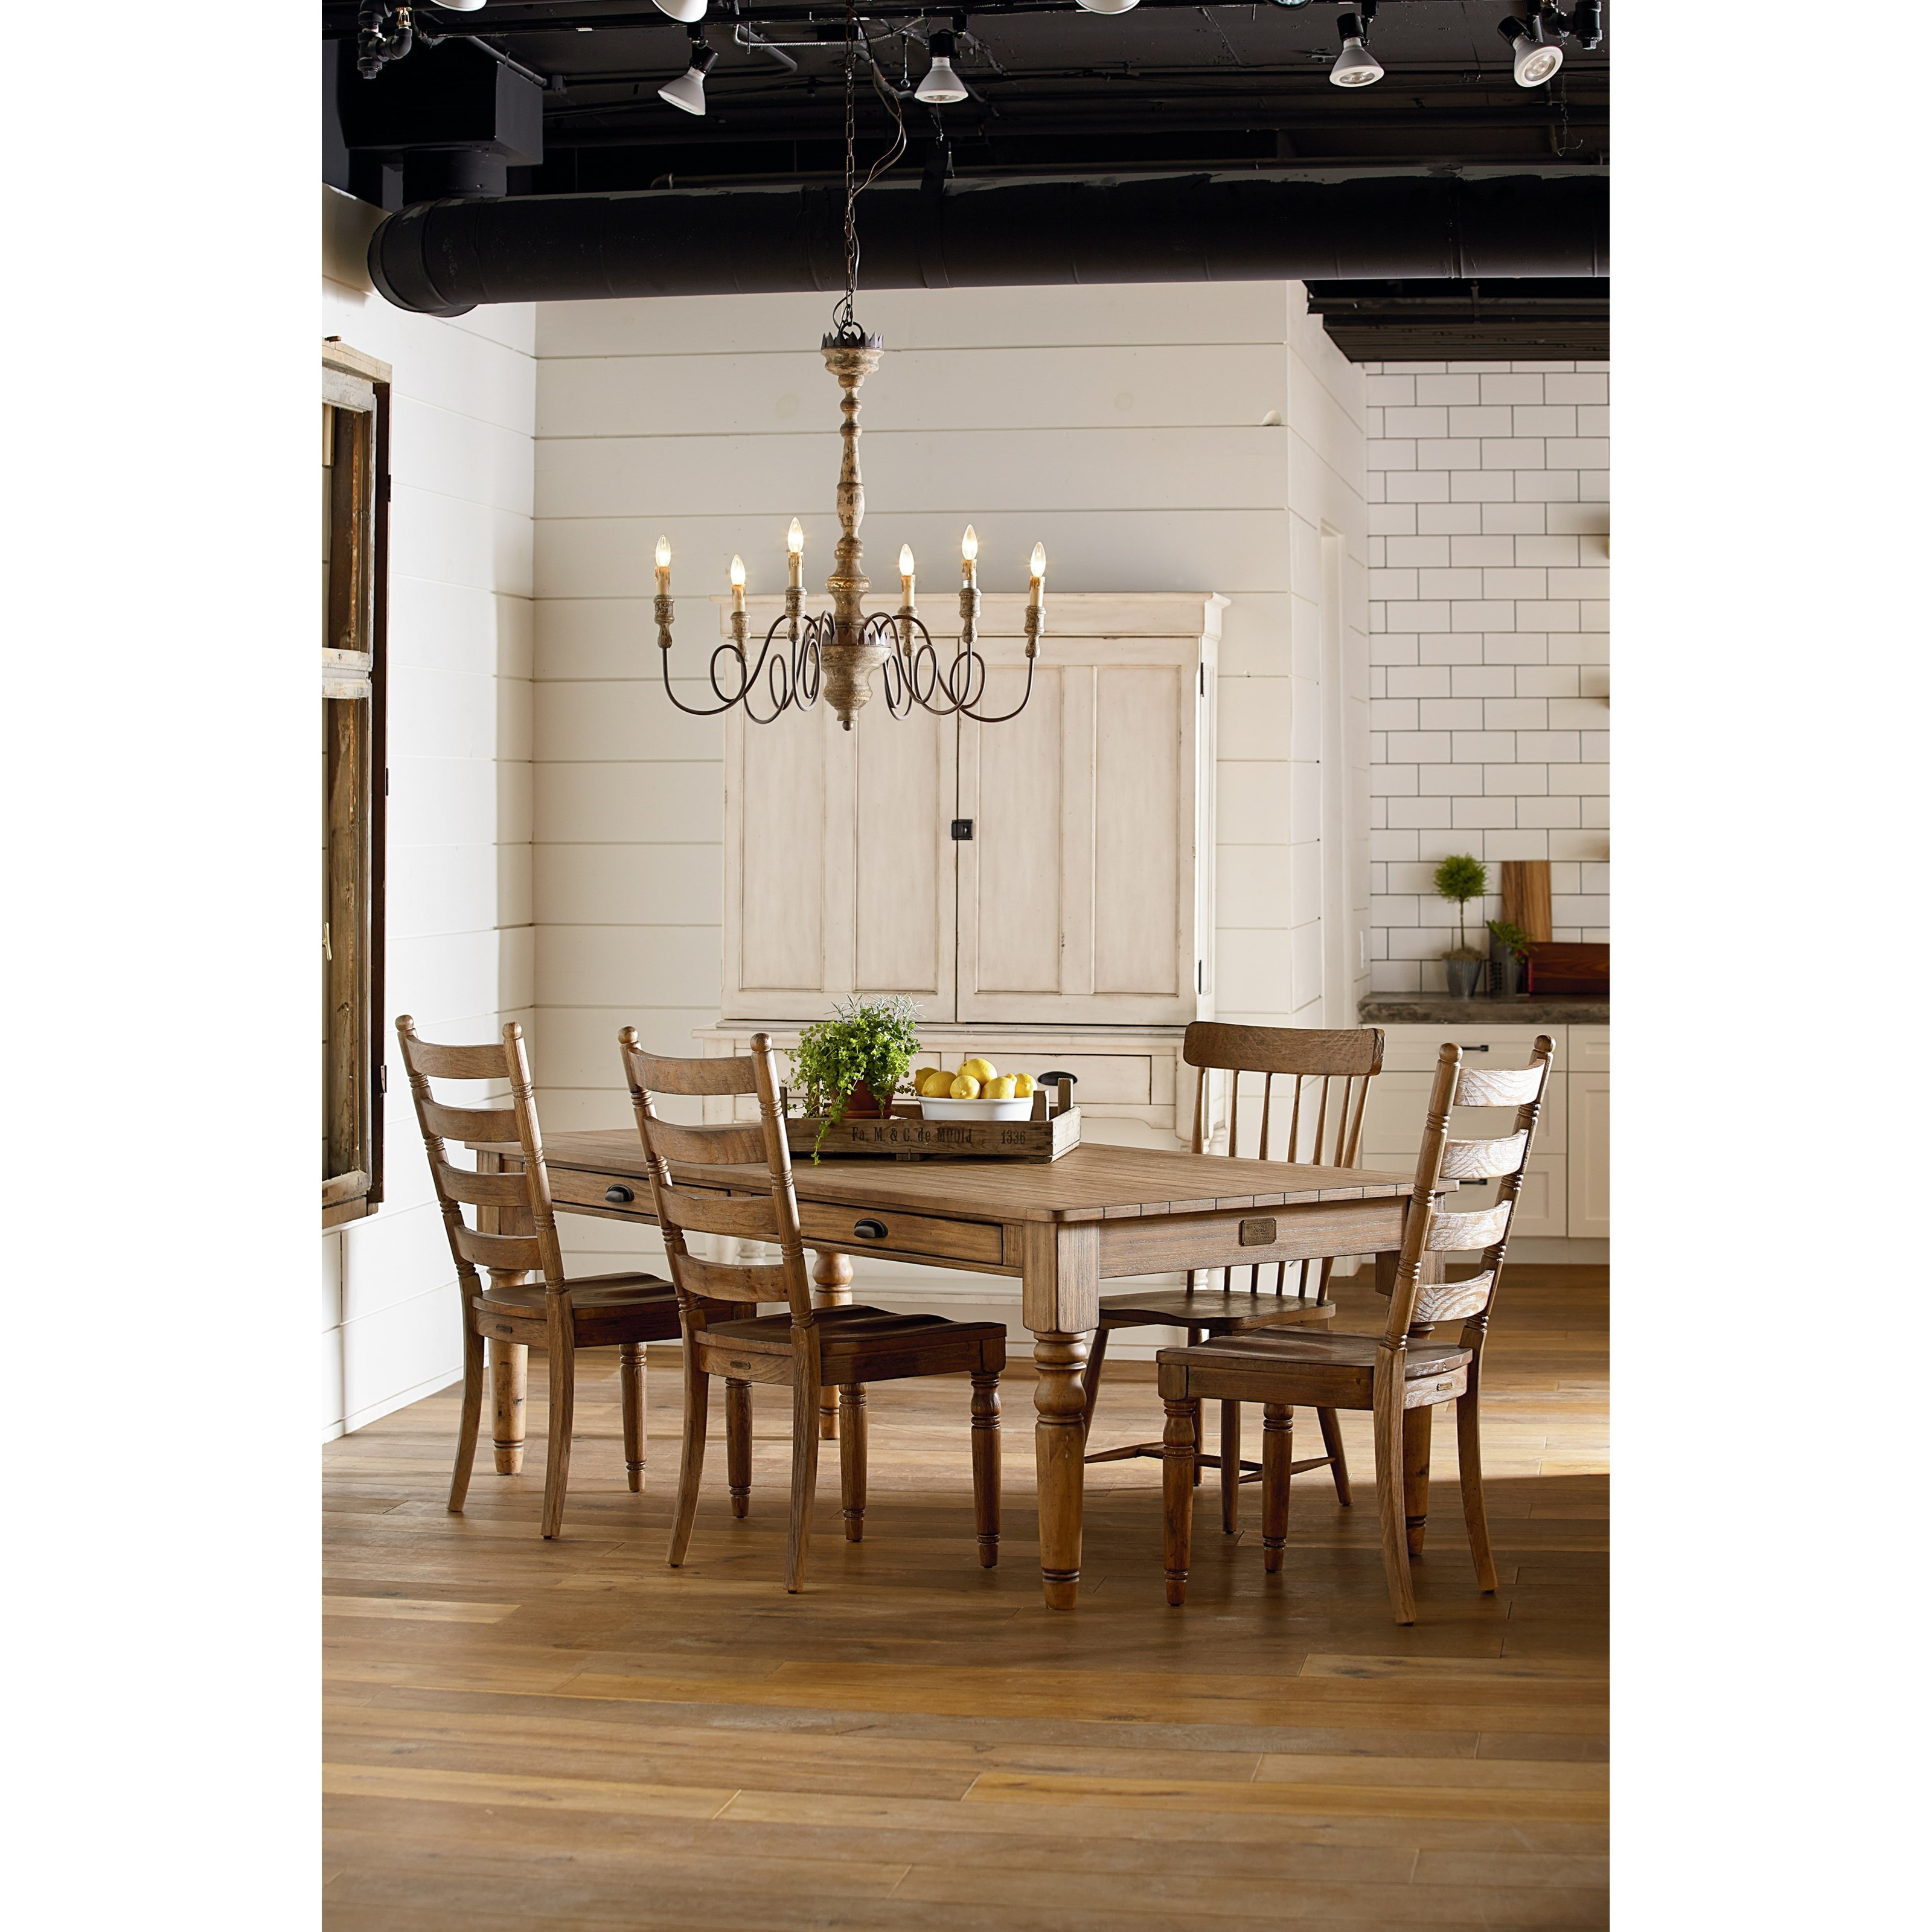 8 foot taper turned dining table by magnolia home by for Magnolia dining table